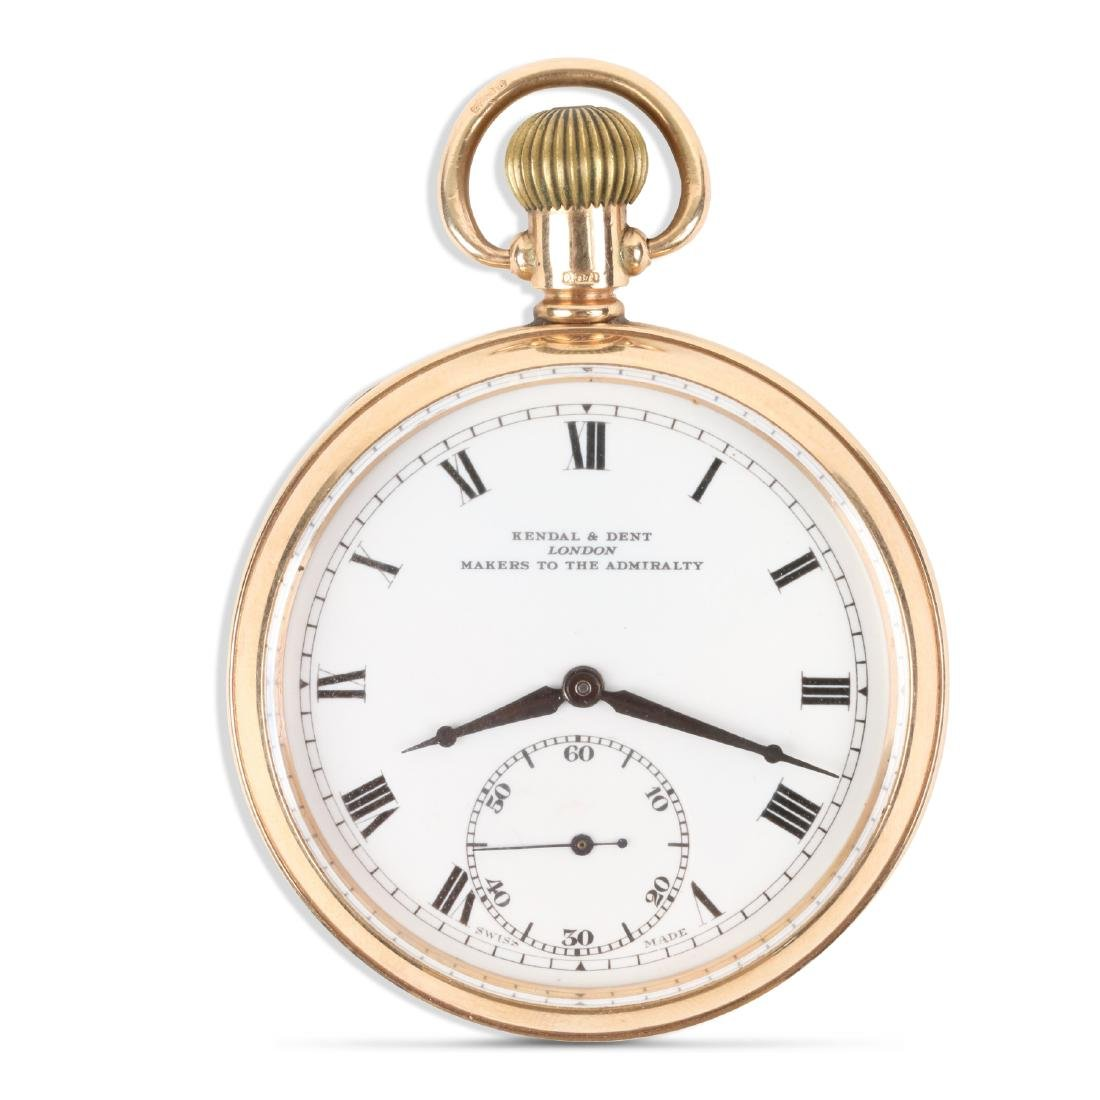 Kendall & Dent, 9K English Pocket Watch